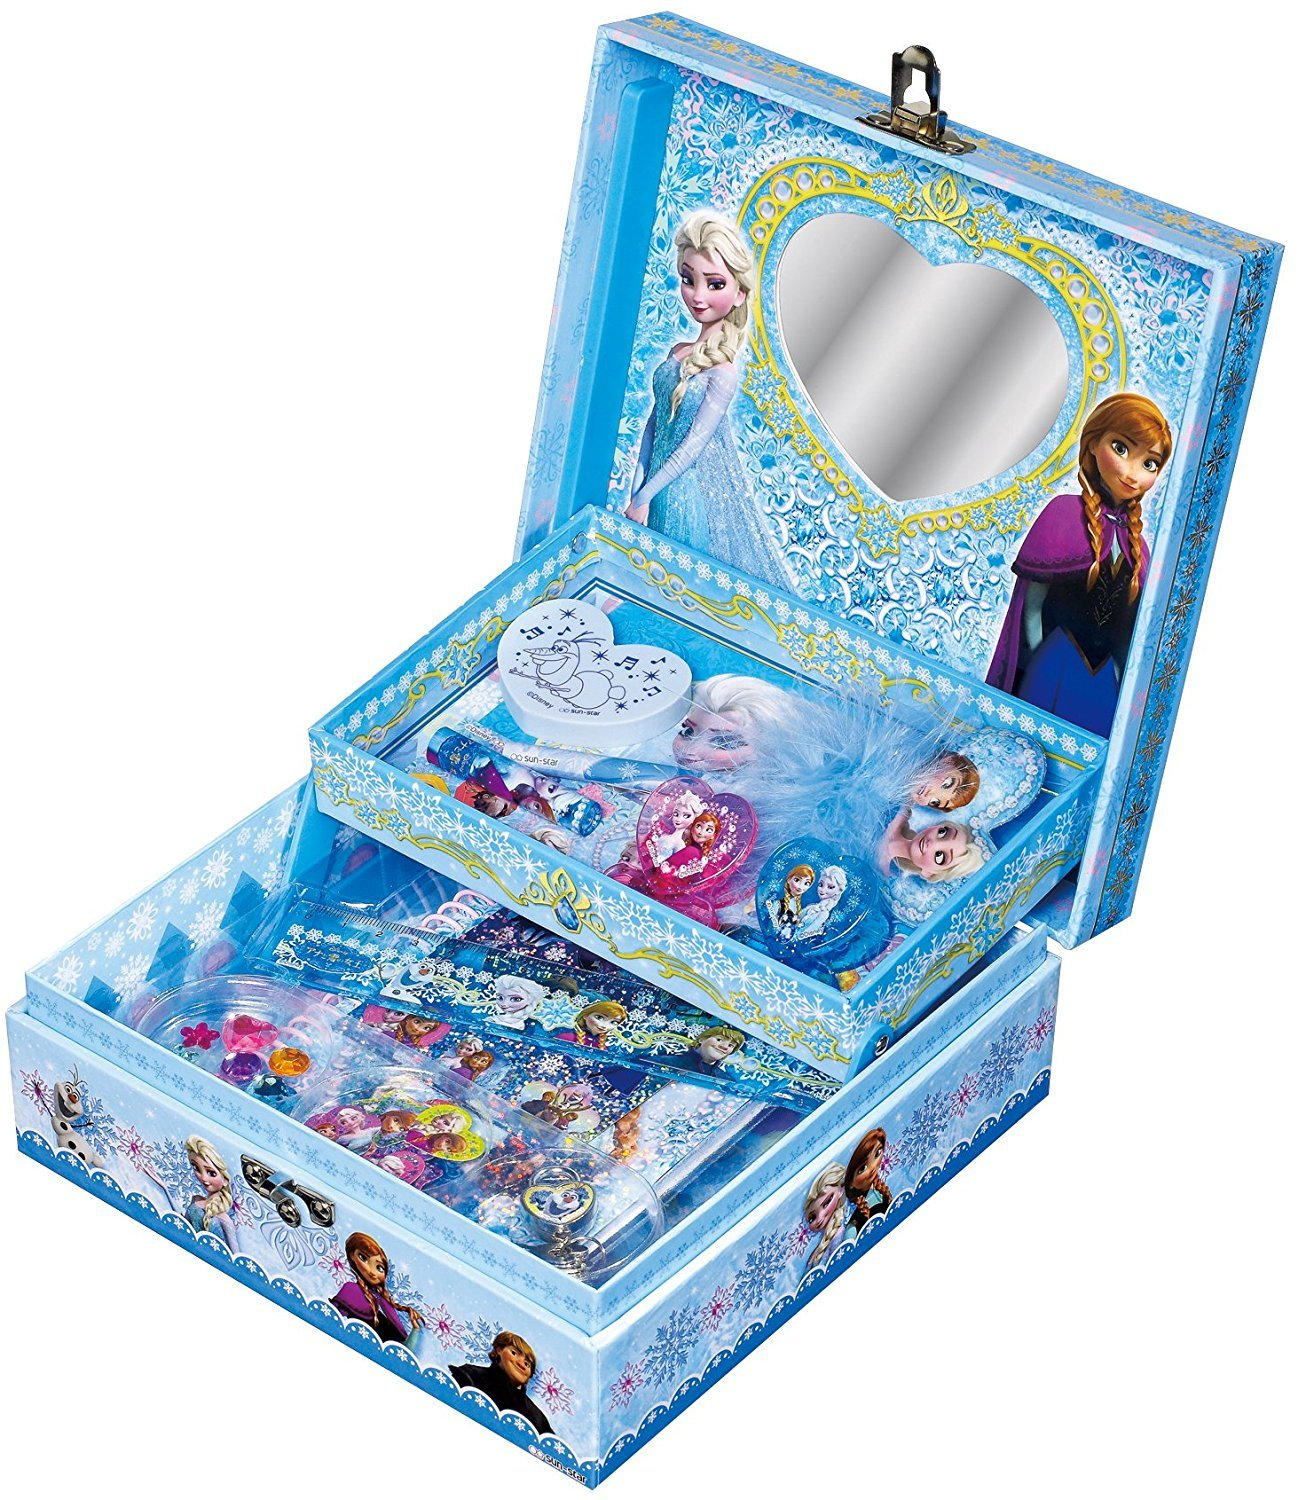 Elsa Frozen Secret of jewelry box case DC Stationery SET Disney F/S Gift set